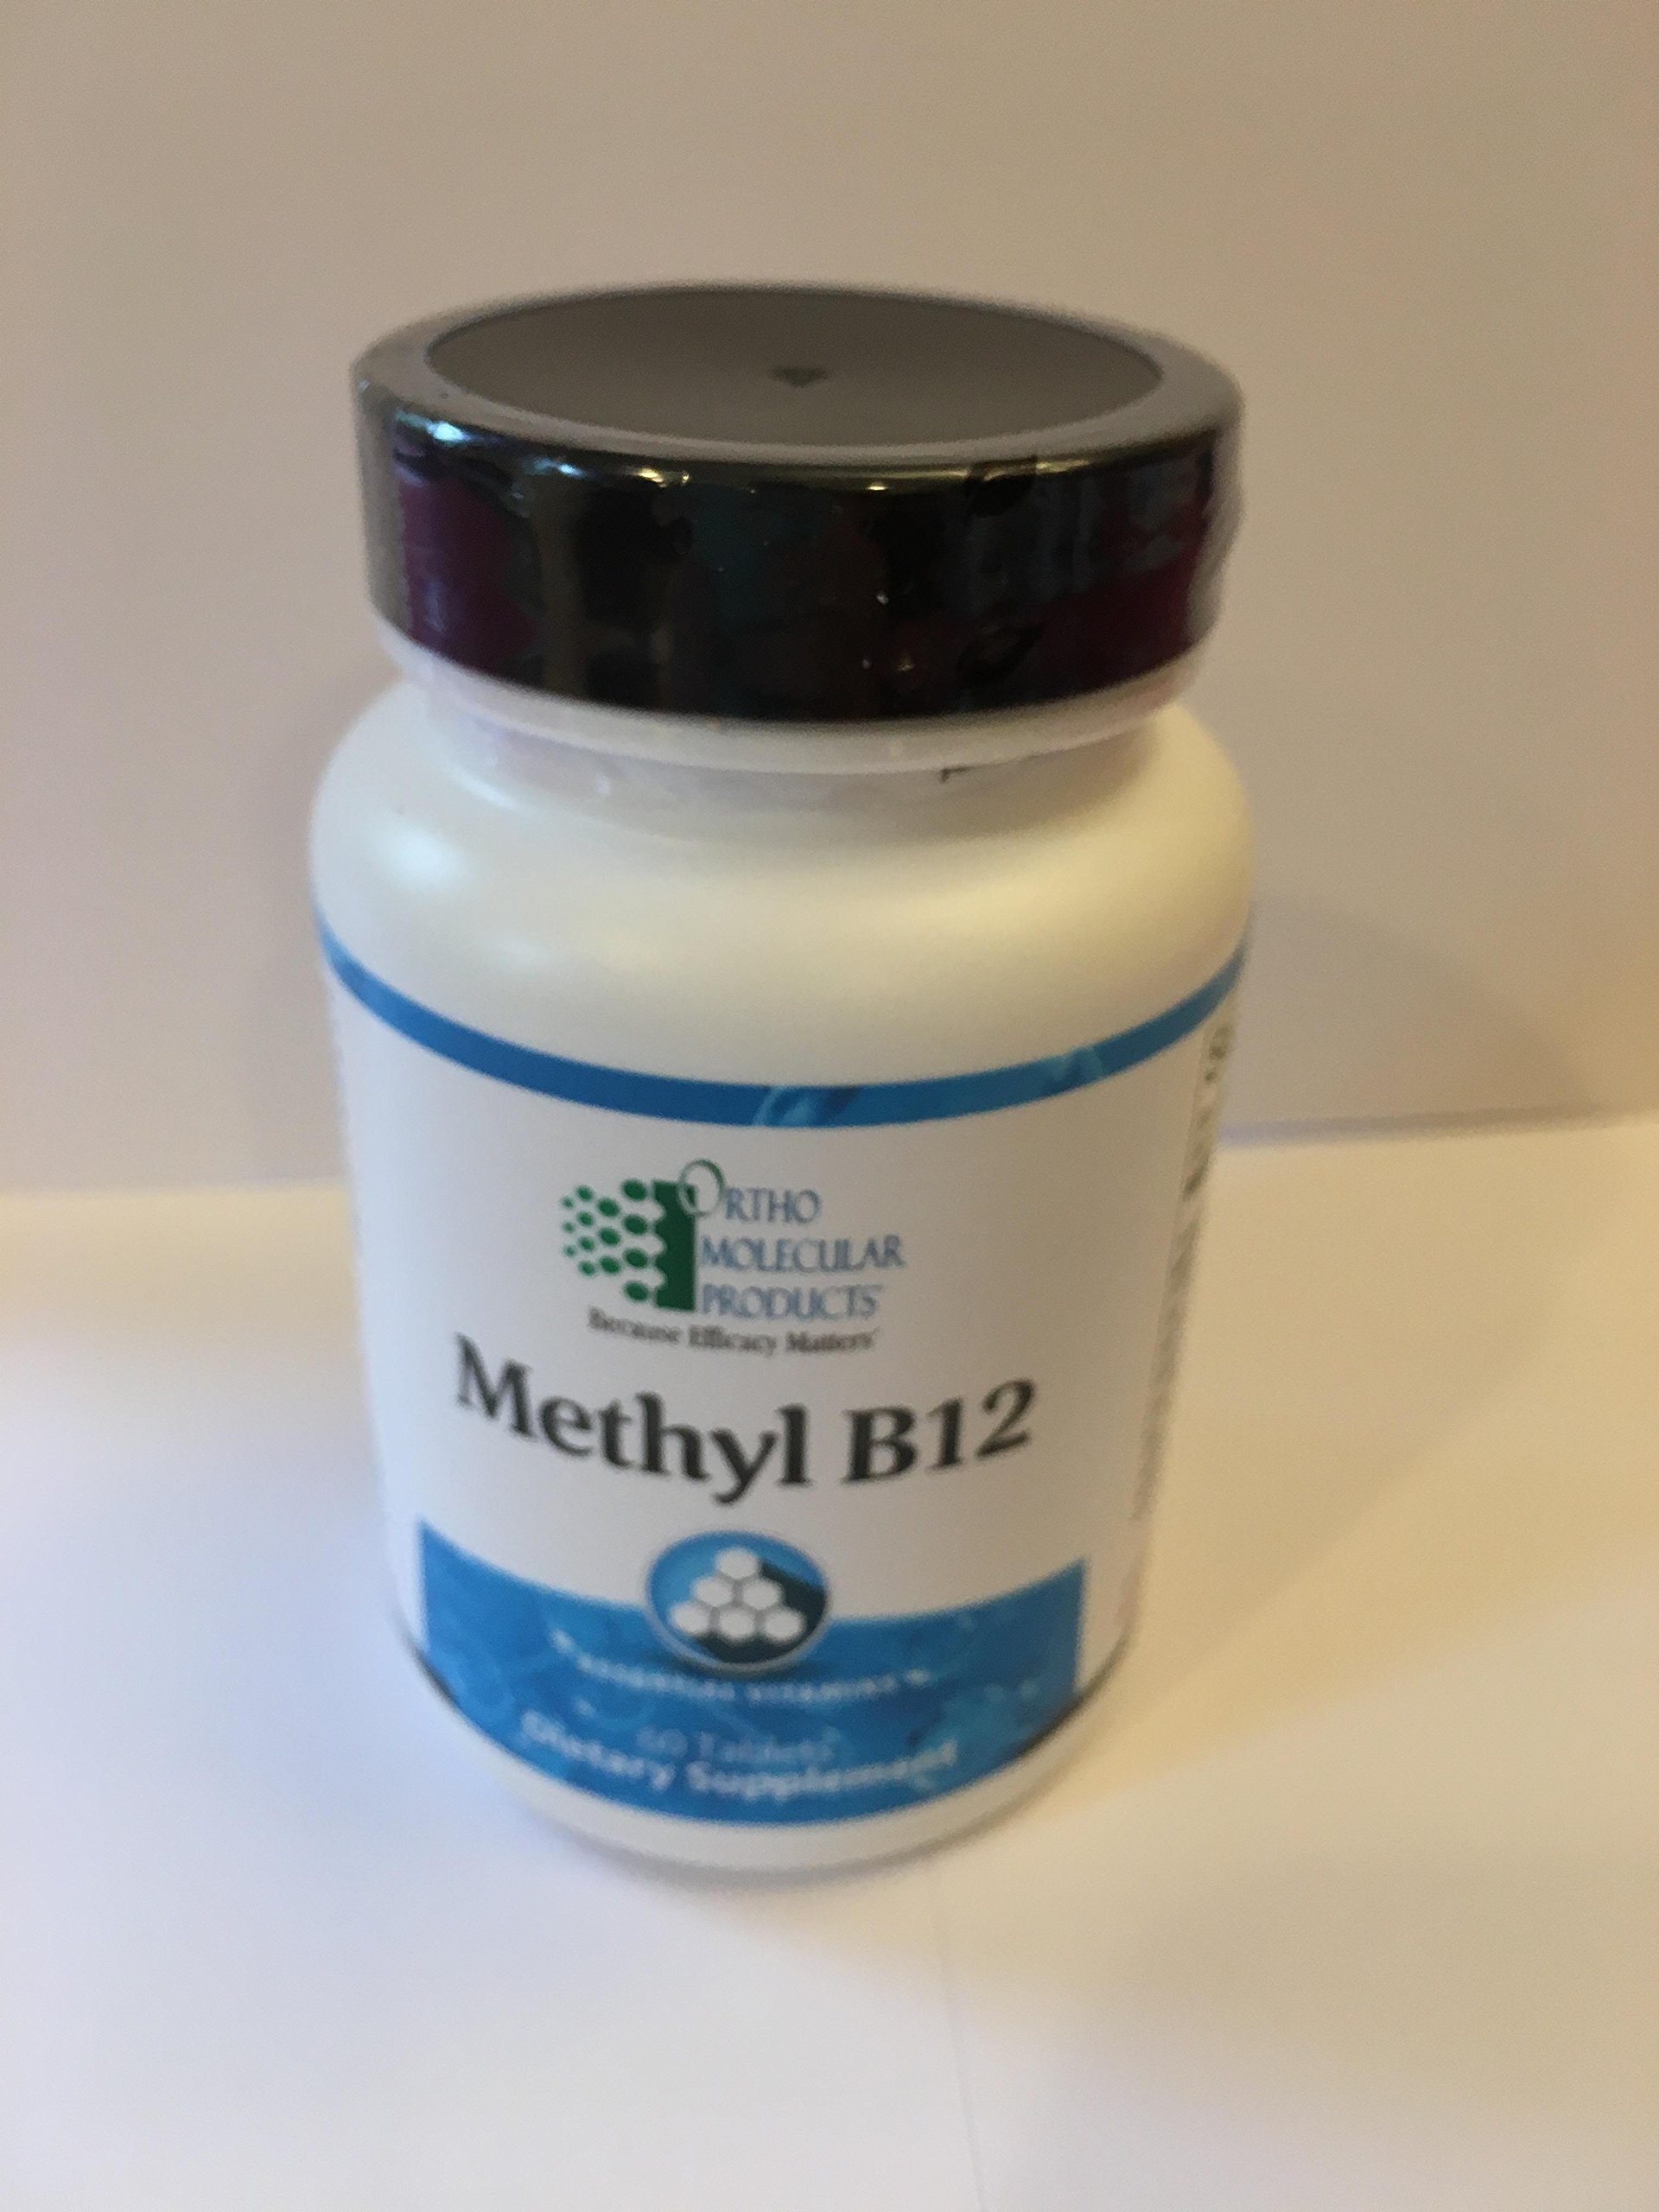 Ortho Molecular - Methyl B12 - 60 Tablets by Ortho Molecular